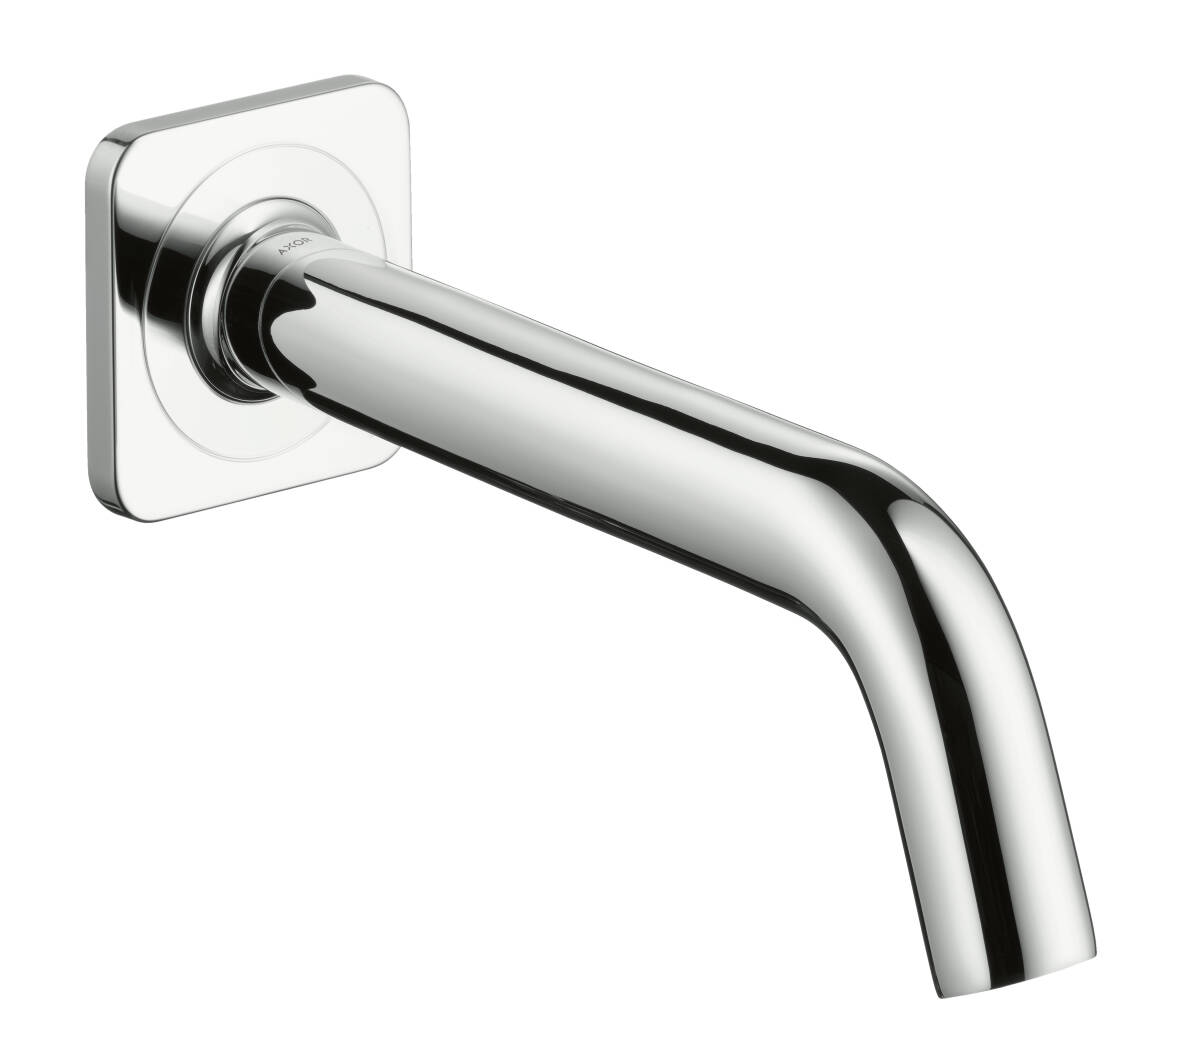 Bath spout, Stainless Steel Optic, 34410800